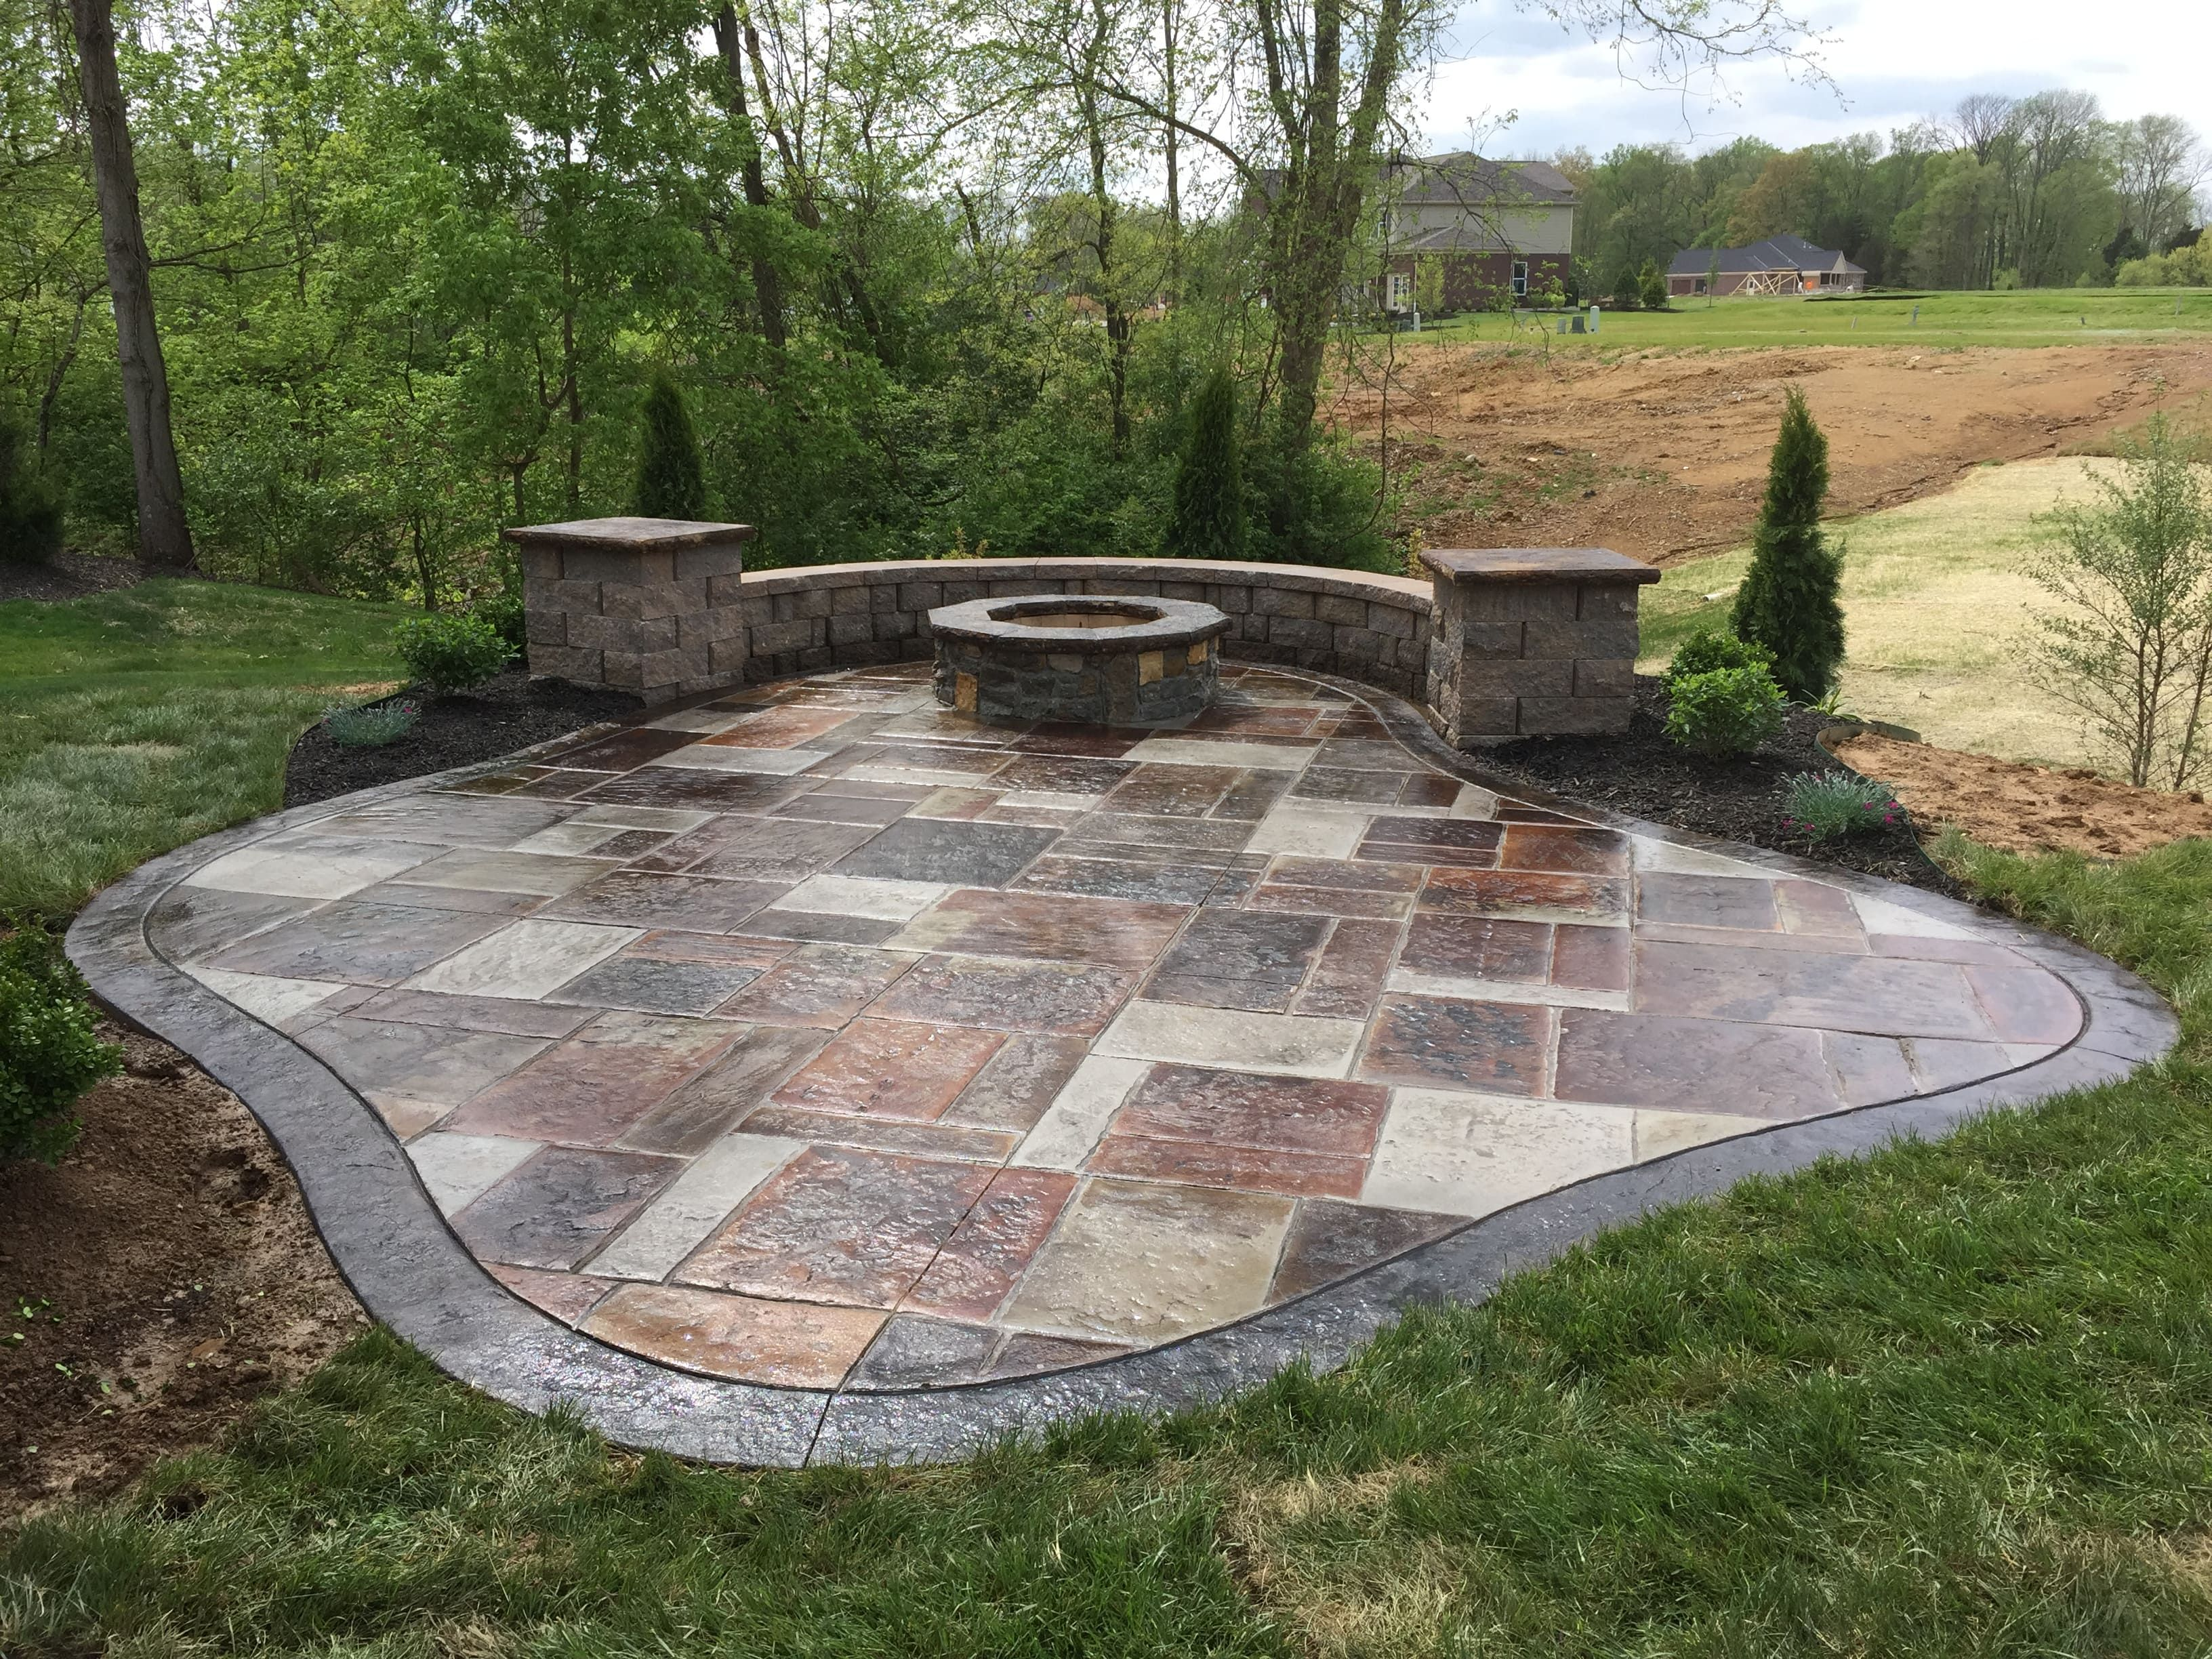 Decorative Concrete Patio With Seating Wall Columns And Fire Pit Cincinnati Ohi Stamped Concrete Patio Decorative Concrete Patio Decorative Concrete Driveways